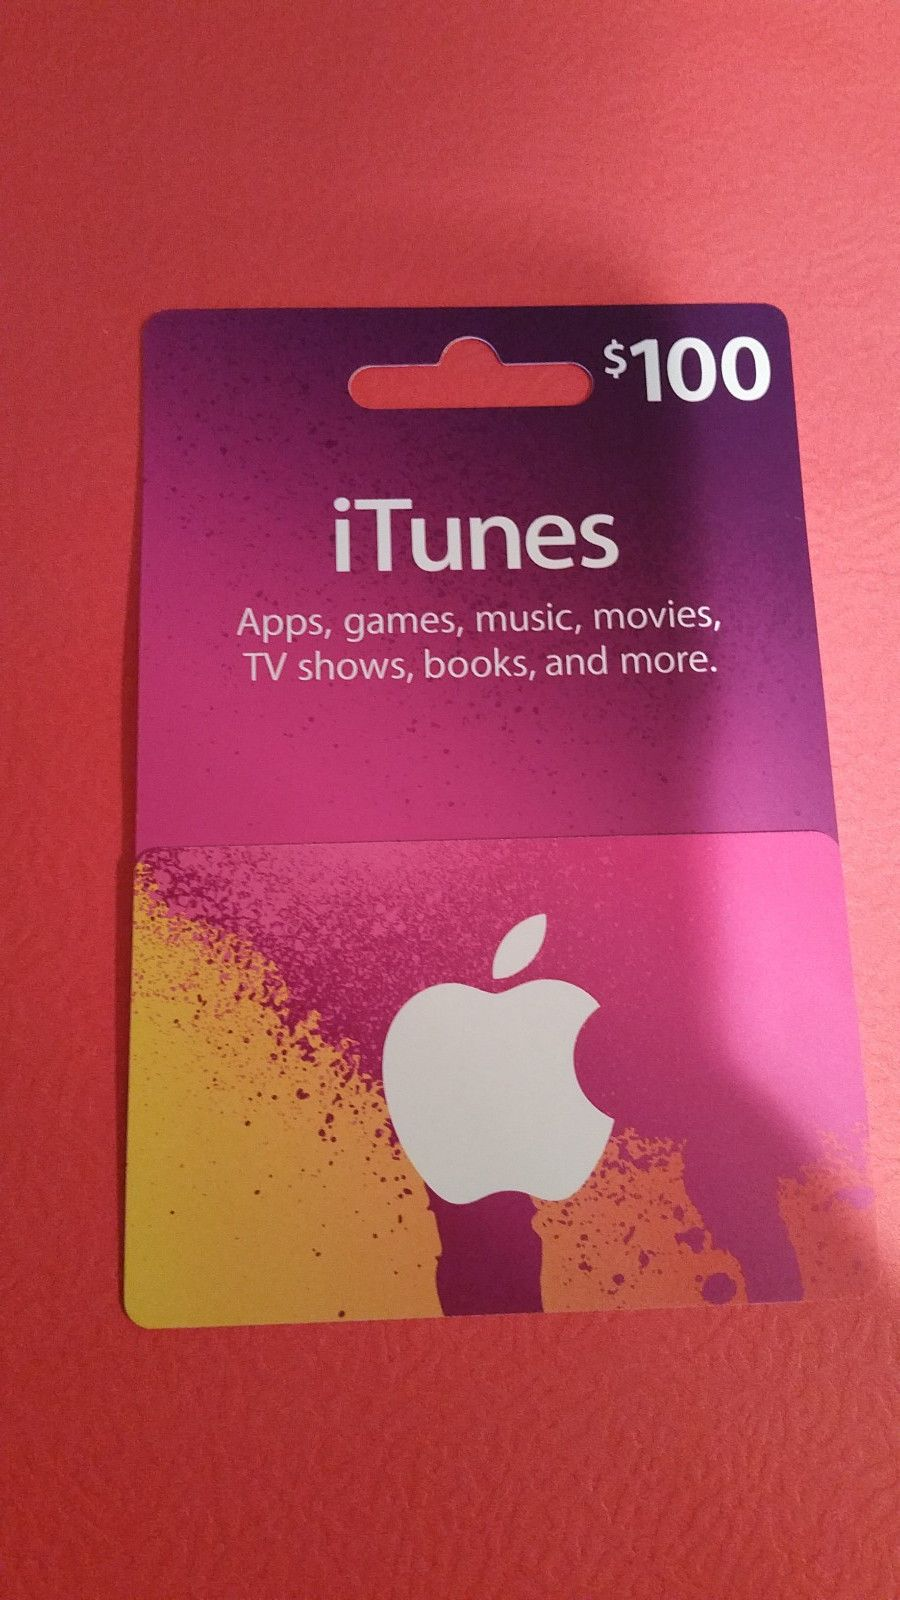 This gift card will be mailed to the winning bidder card gift this gift card will be mailed to the winning bidder card gift itunes apple gift cards coupons pinterest itunes gift cards 1betcityfo Gallery